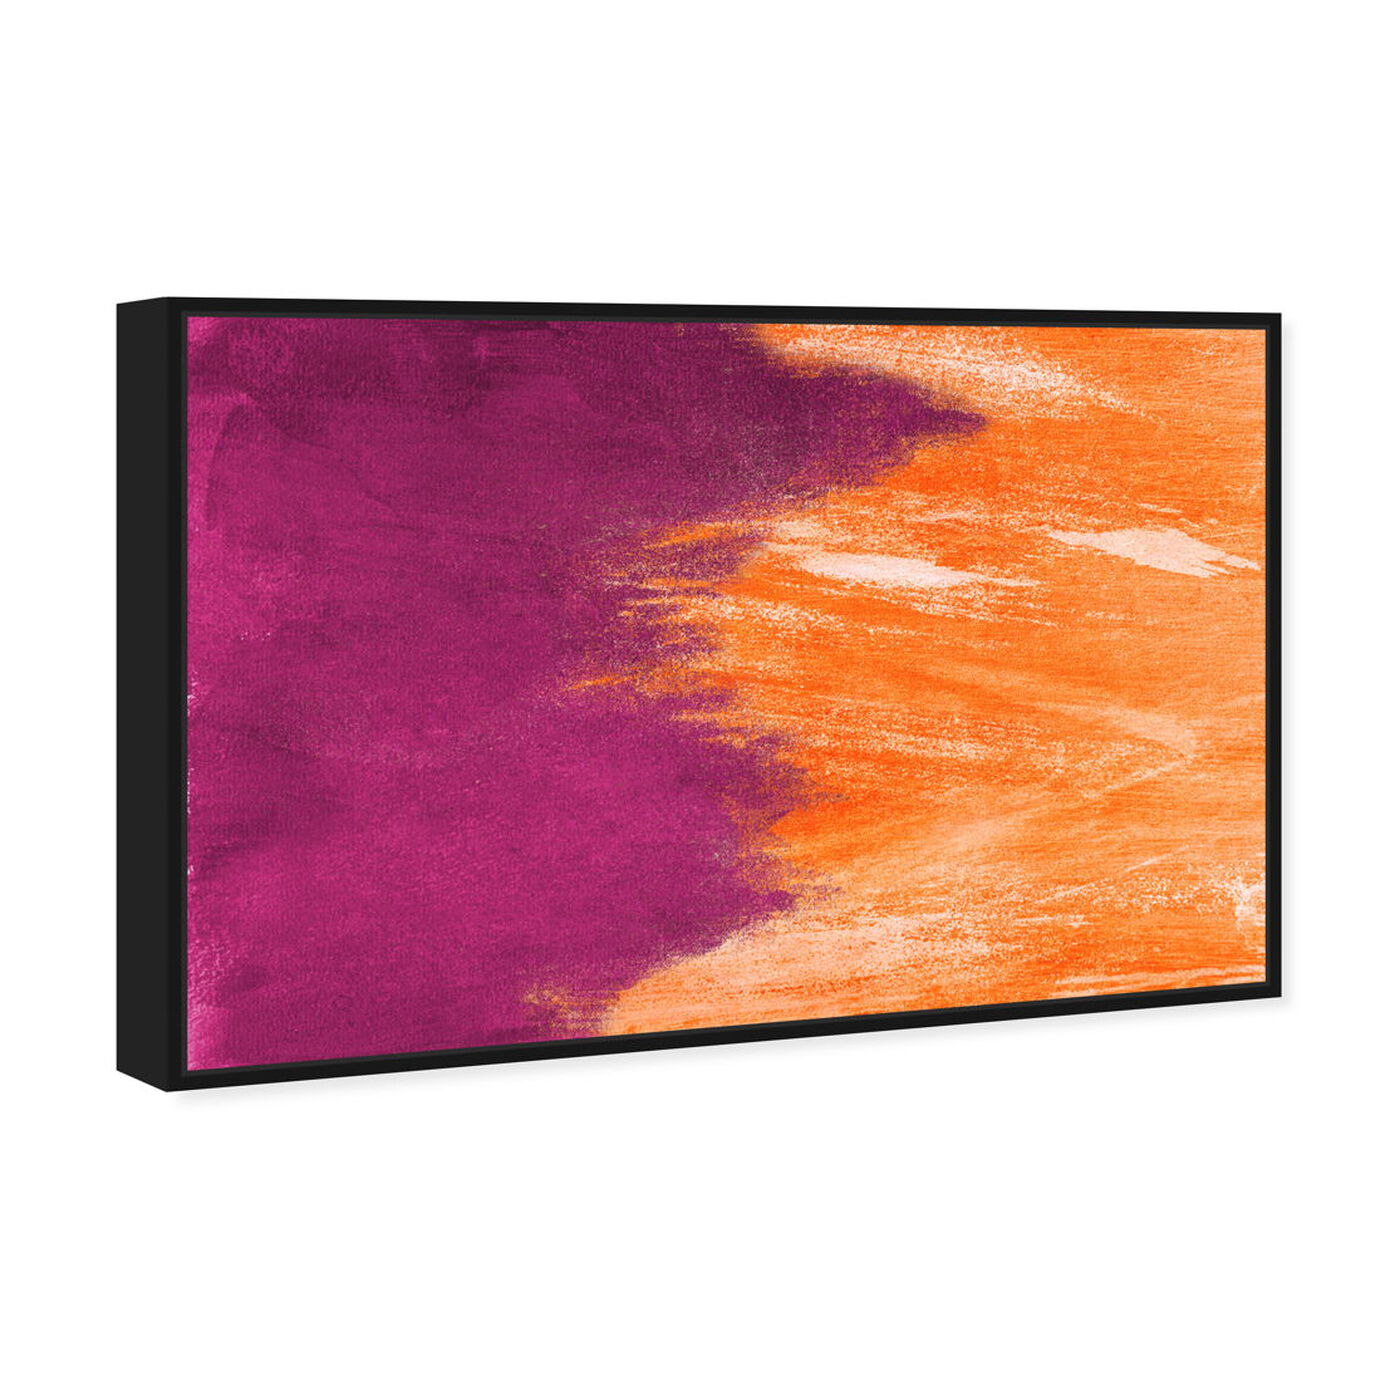 Angled view of Light symphony Orange featuring abstract and paint art.